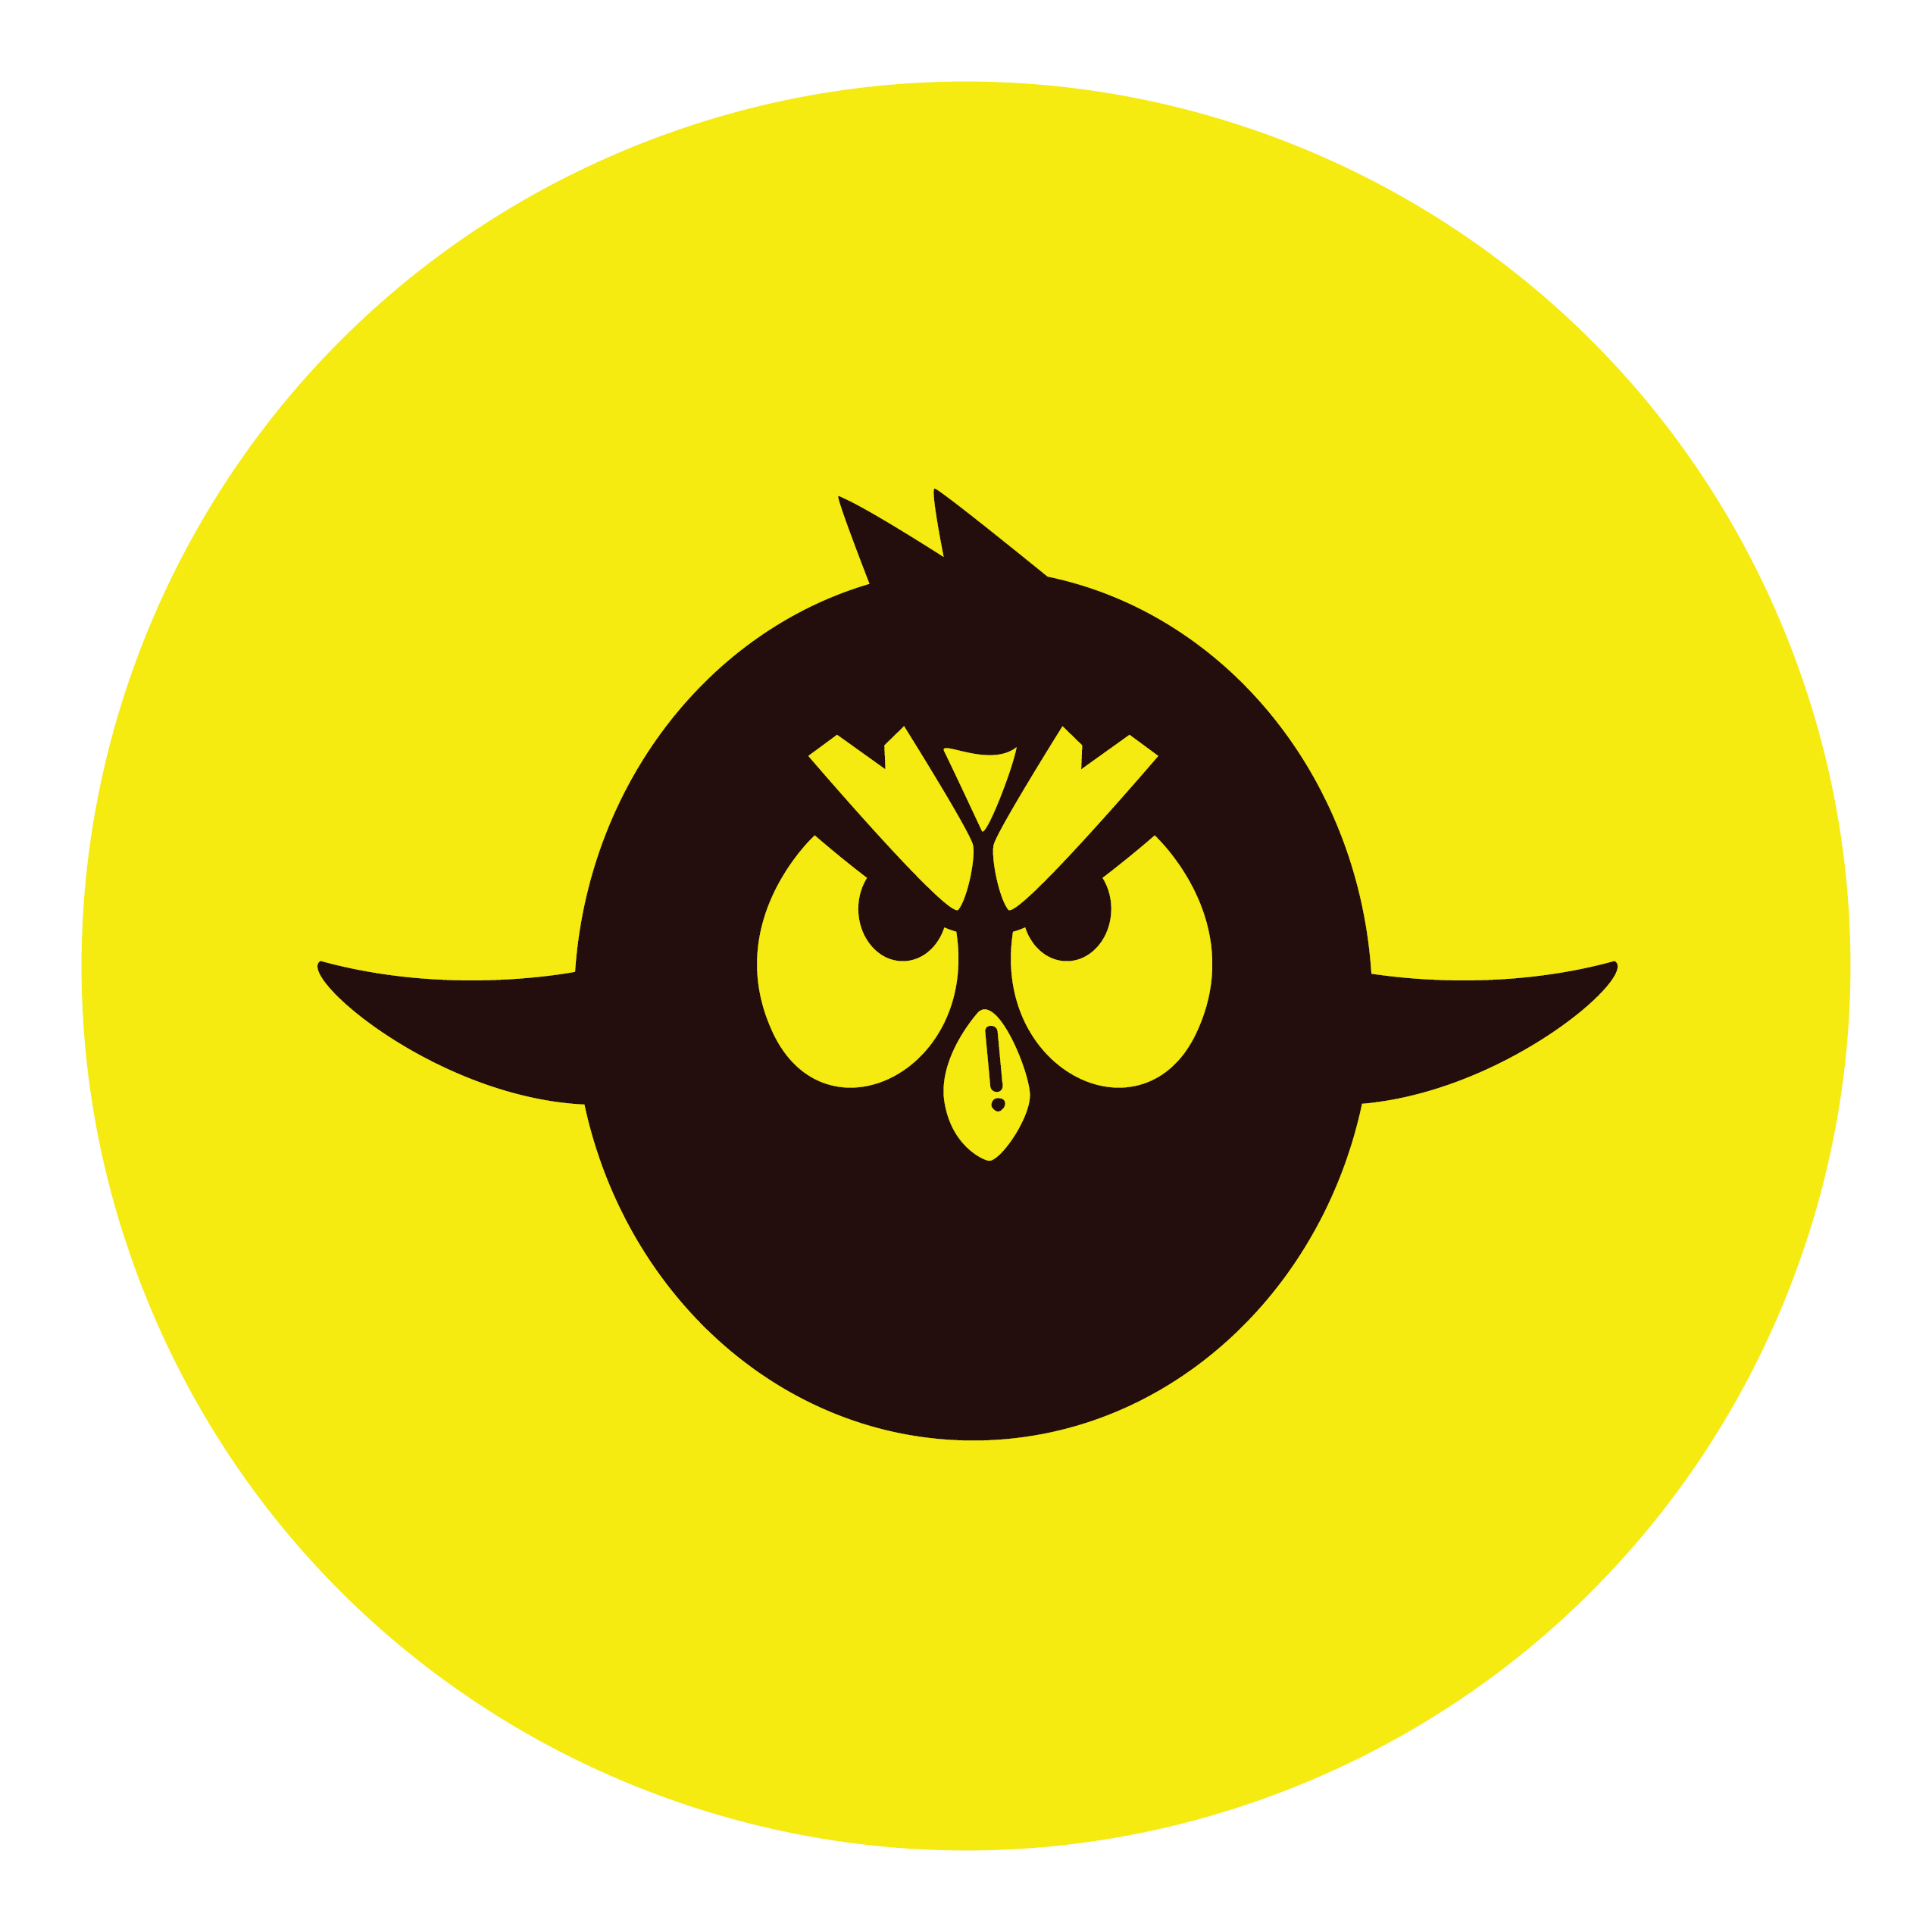 An image of a black angry bird character contained in a yellow circle